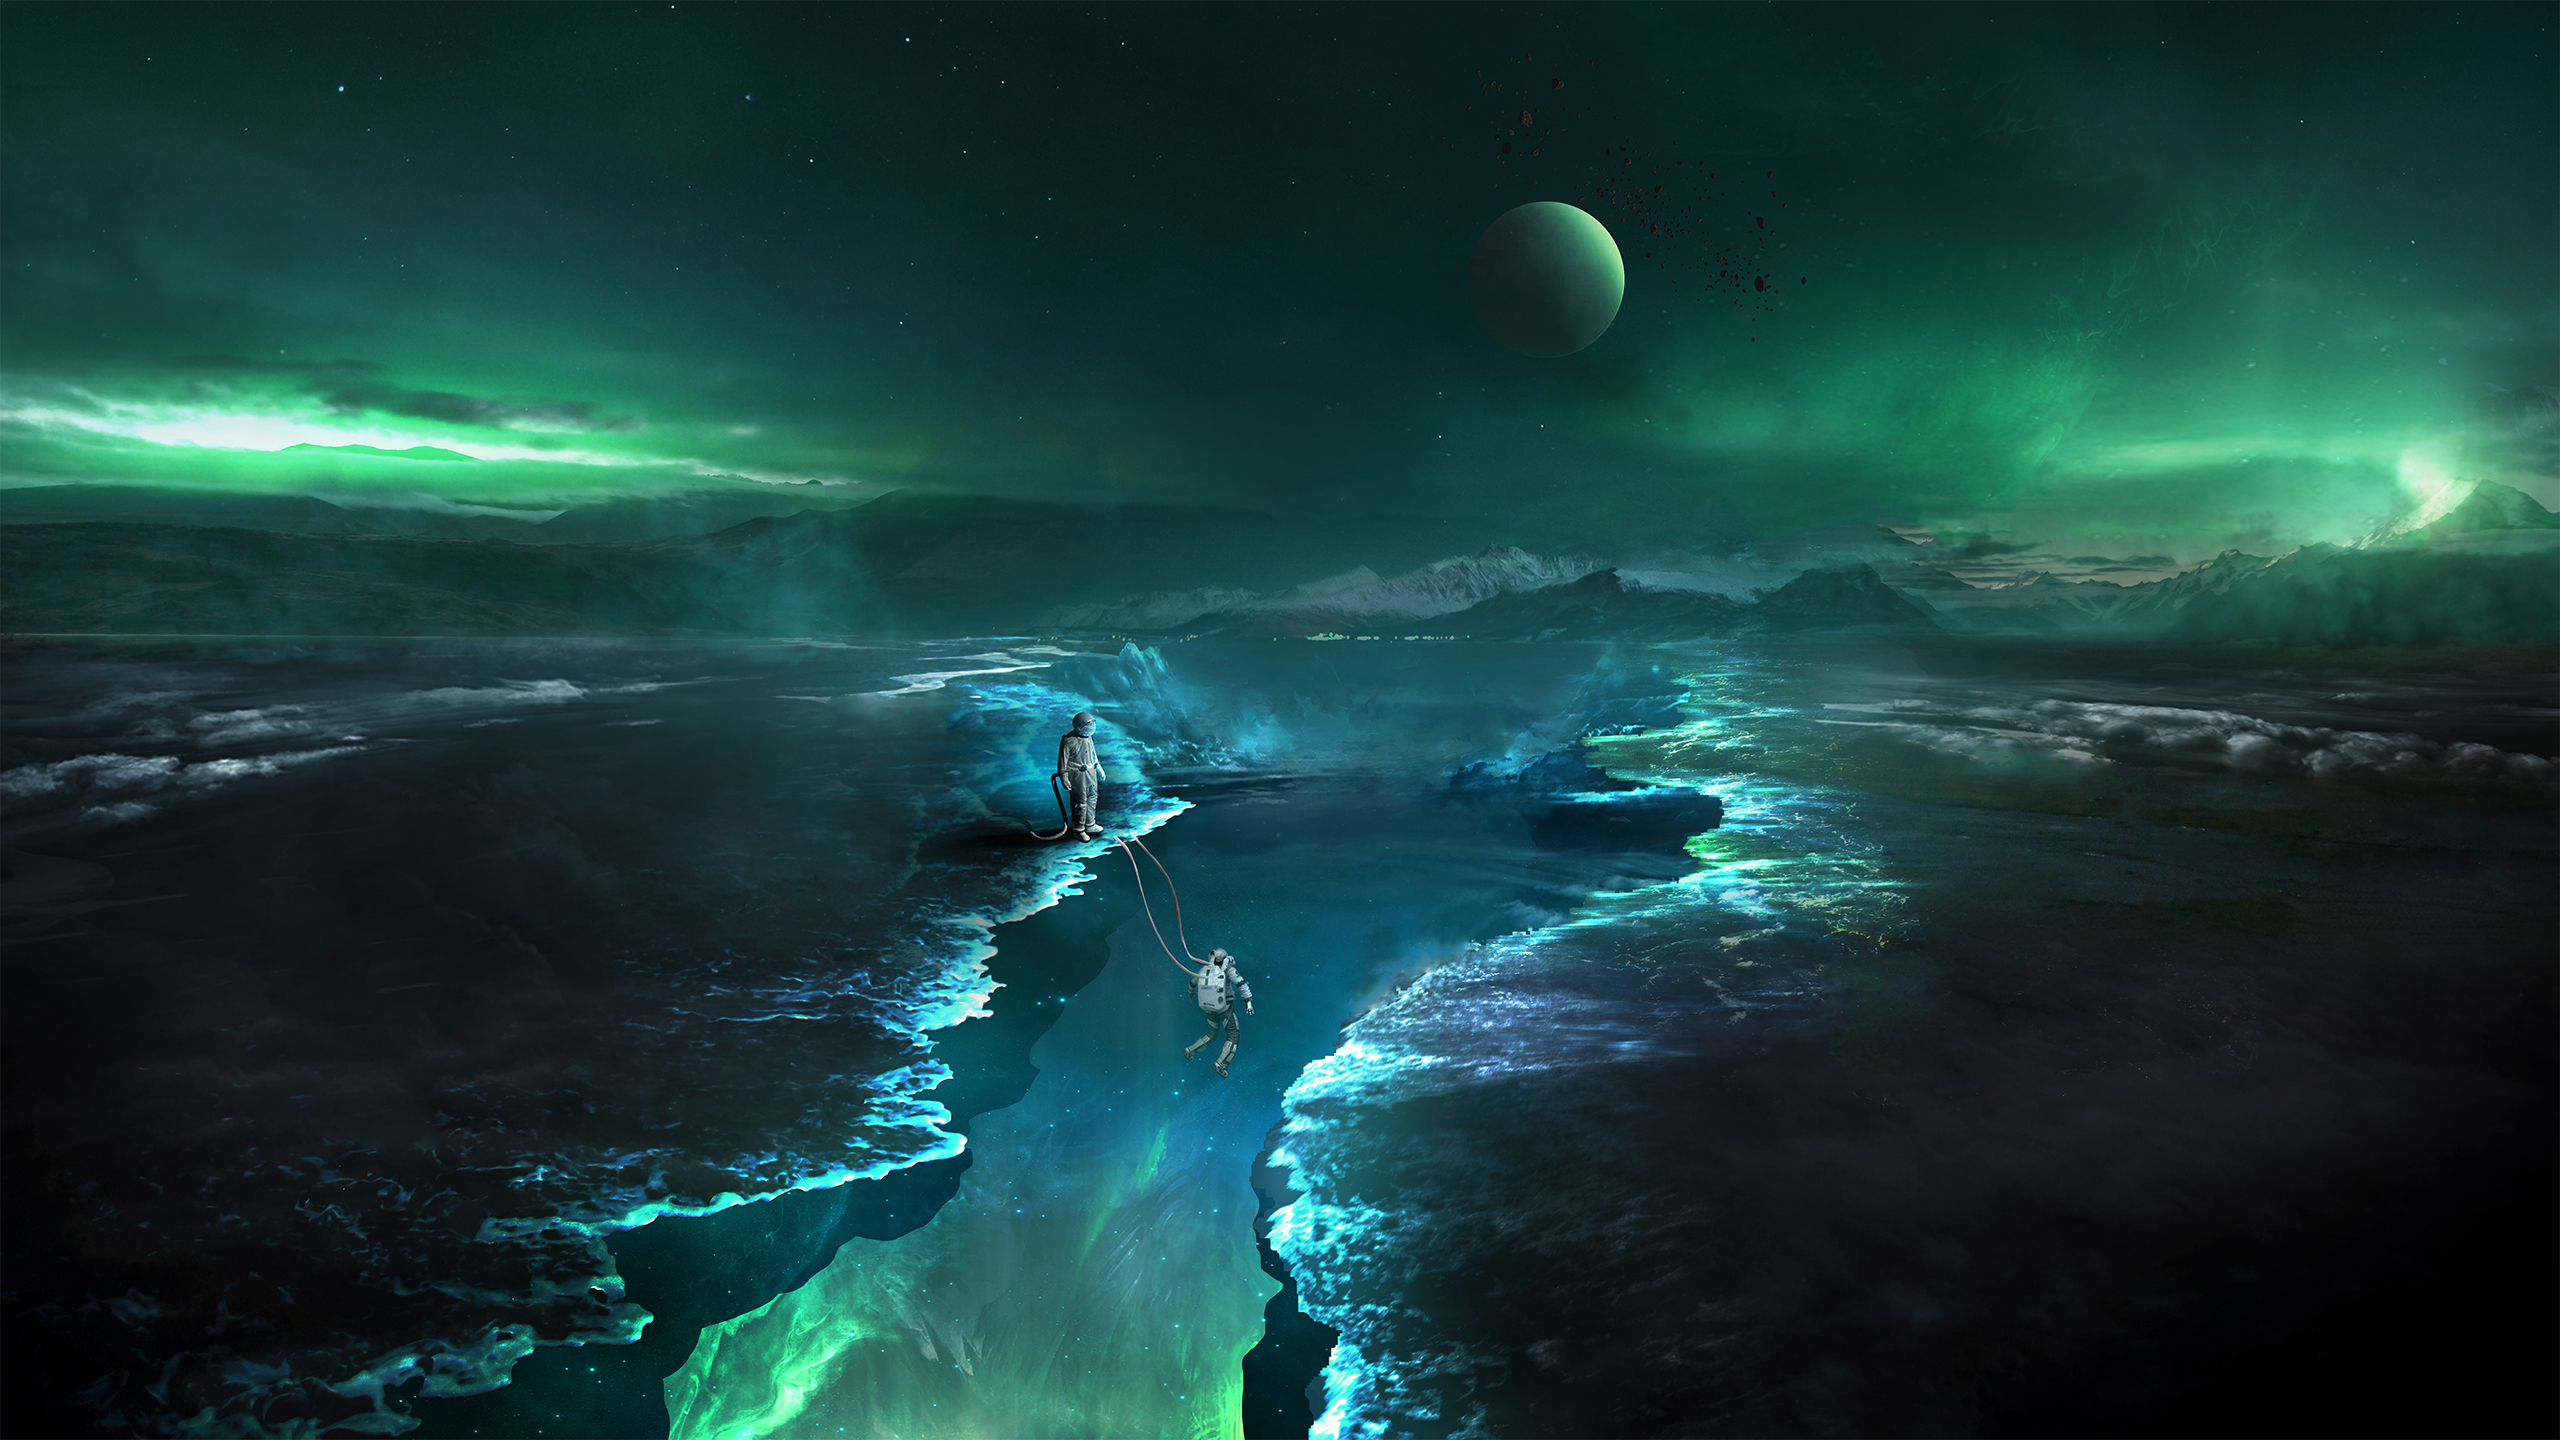 Astronaut Space Digital Art Fantasy Hd Artist 4k Wallpapers Images Backgrounds Photos And Pictures